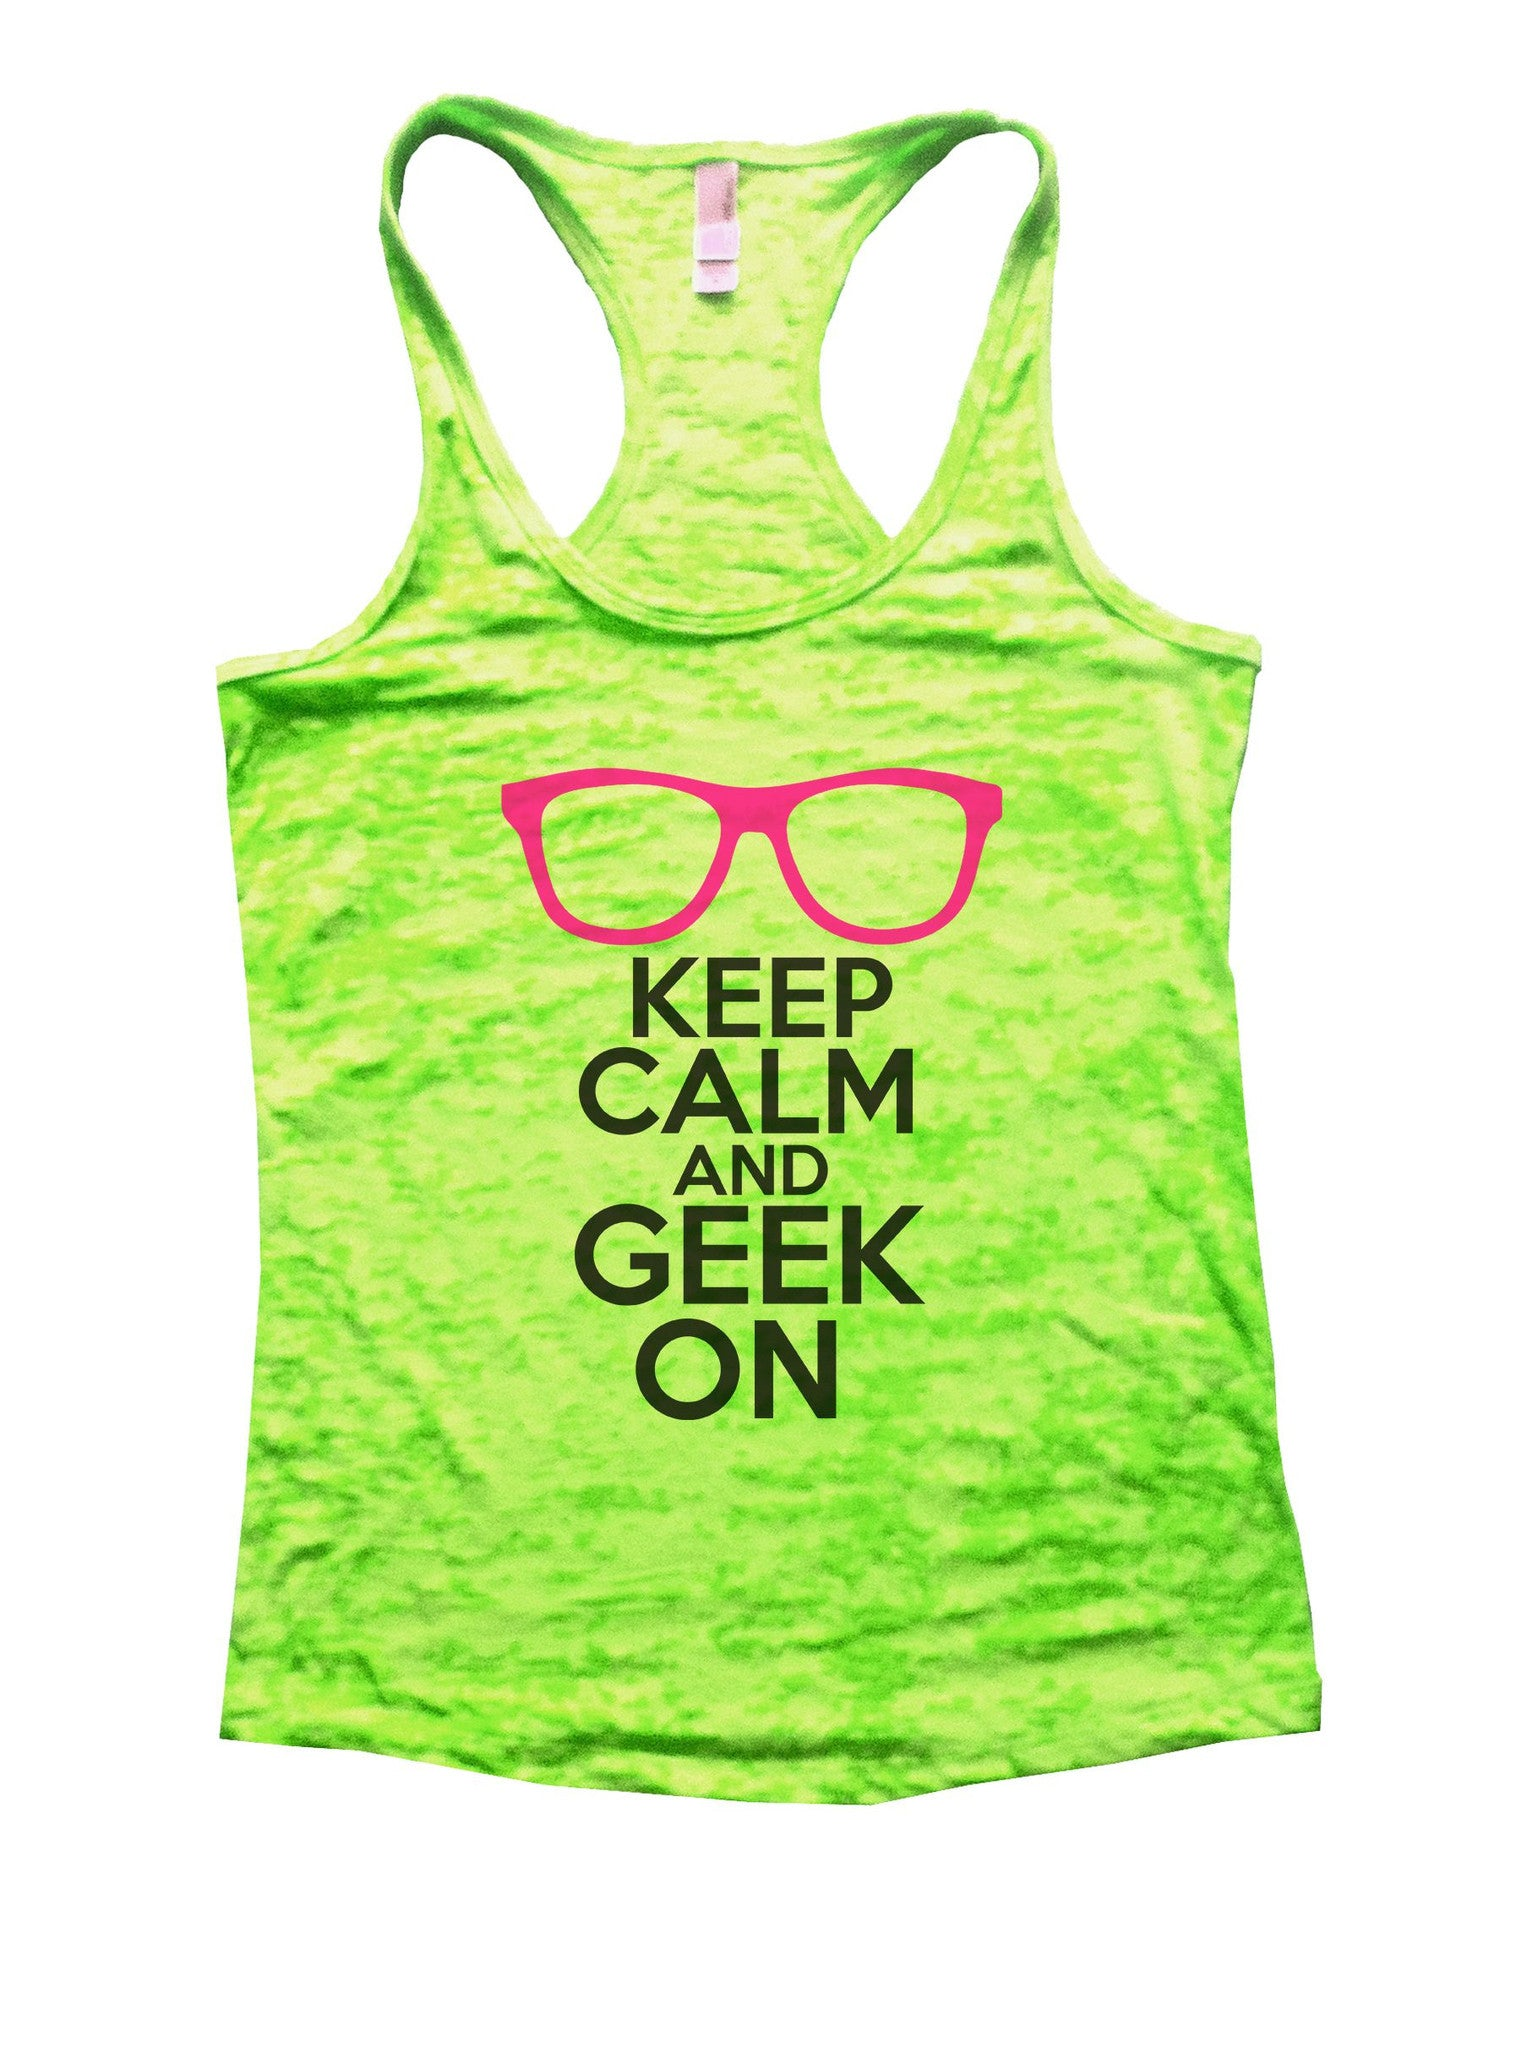 Keep Calm And Geek On Burnout Tank Top By BurnoutTankTops.com - 1121 - Funny Shirts Tank Tops Burnouts and Triblends  - 2